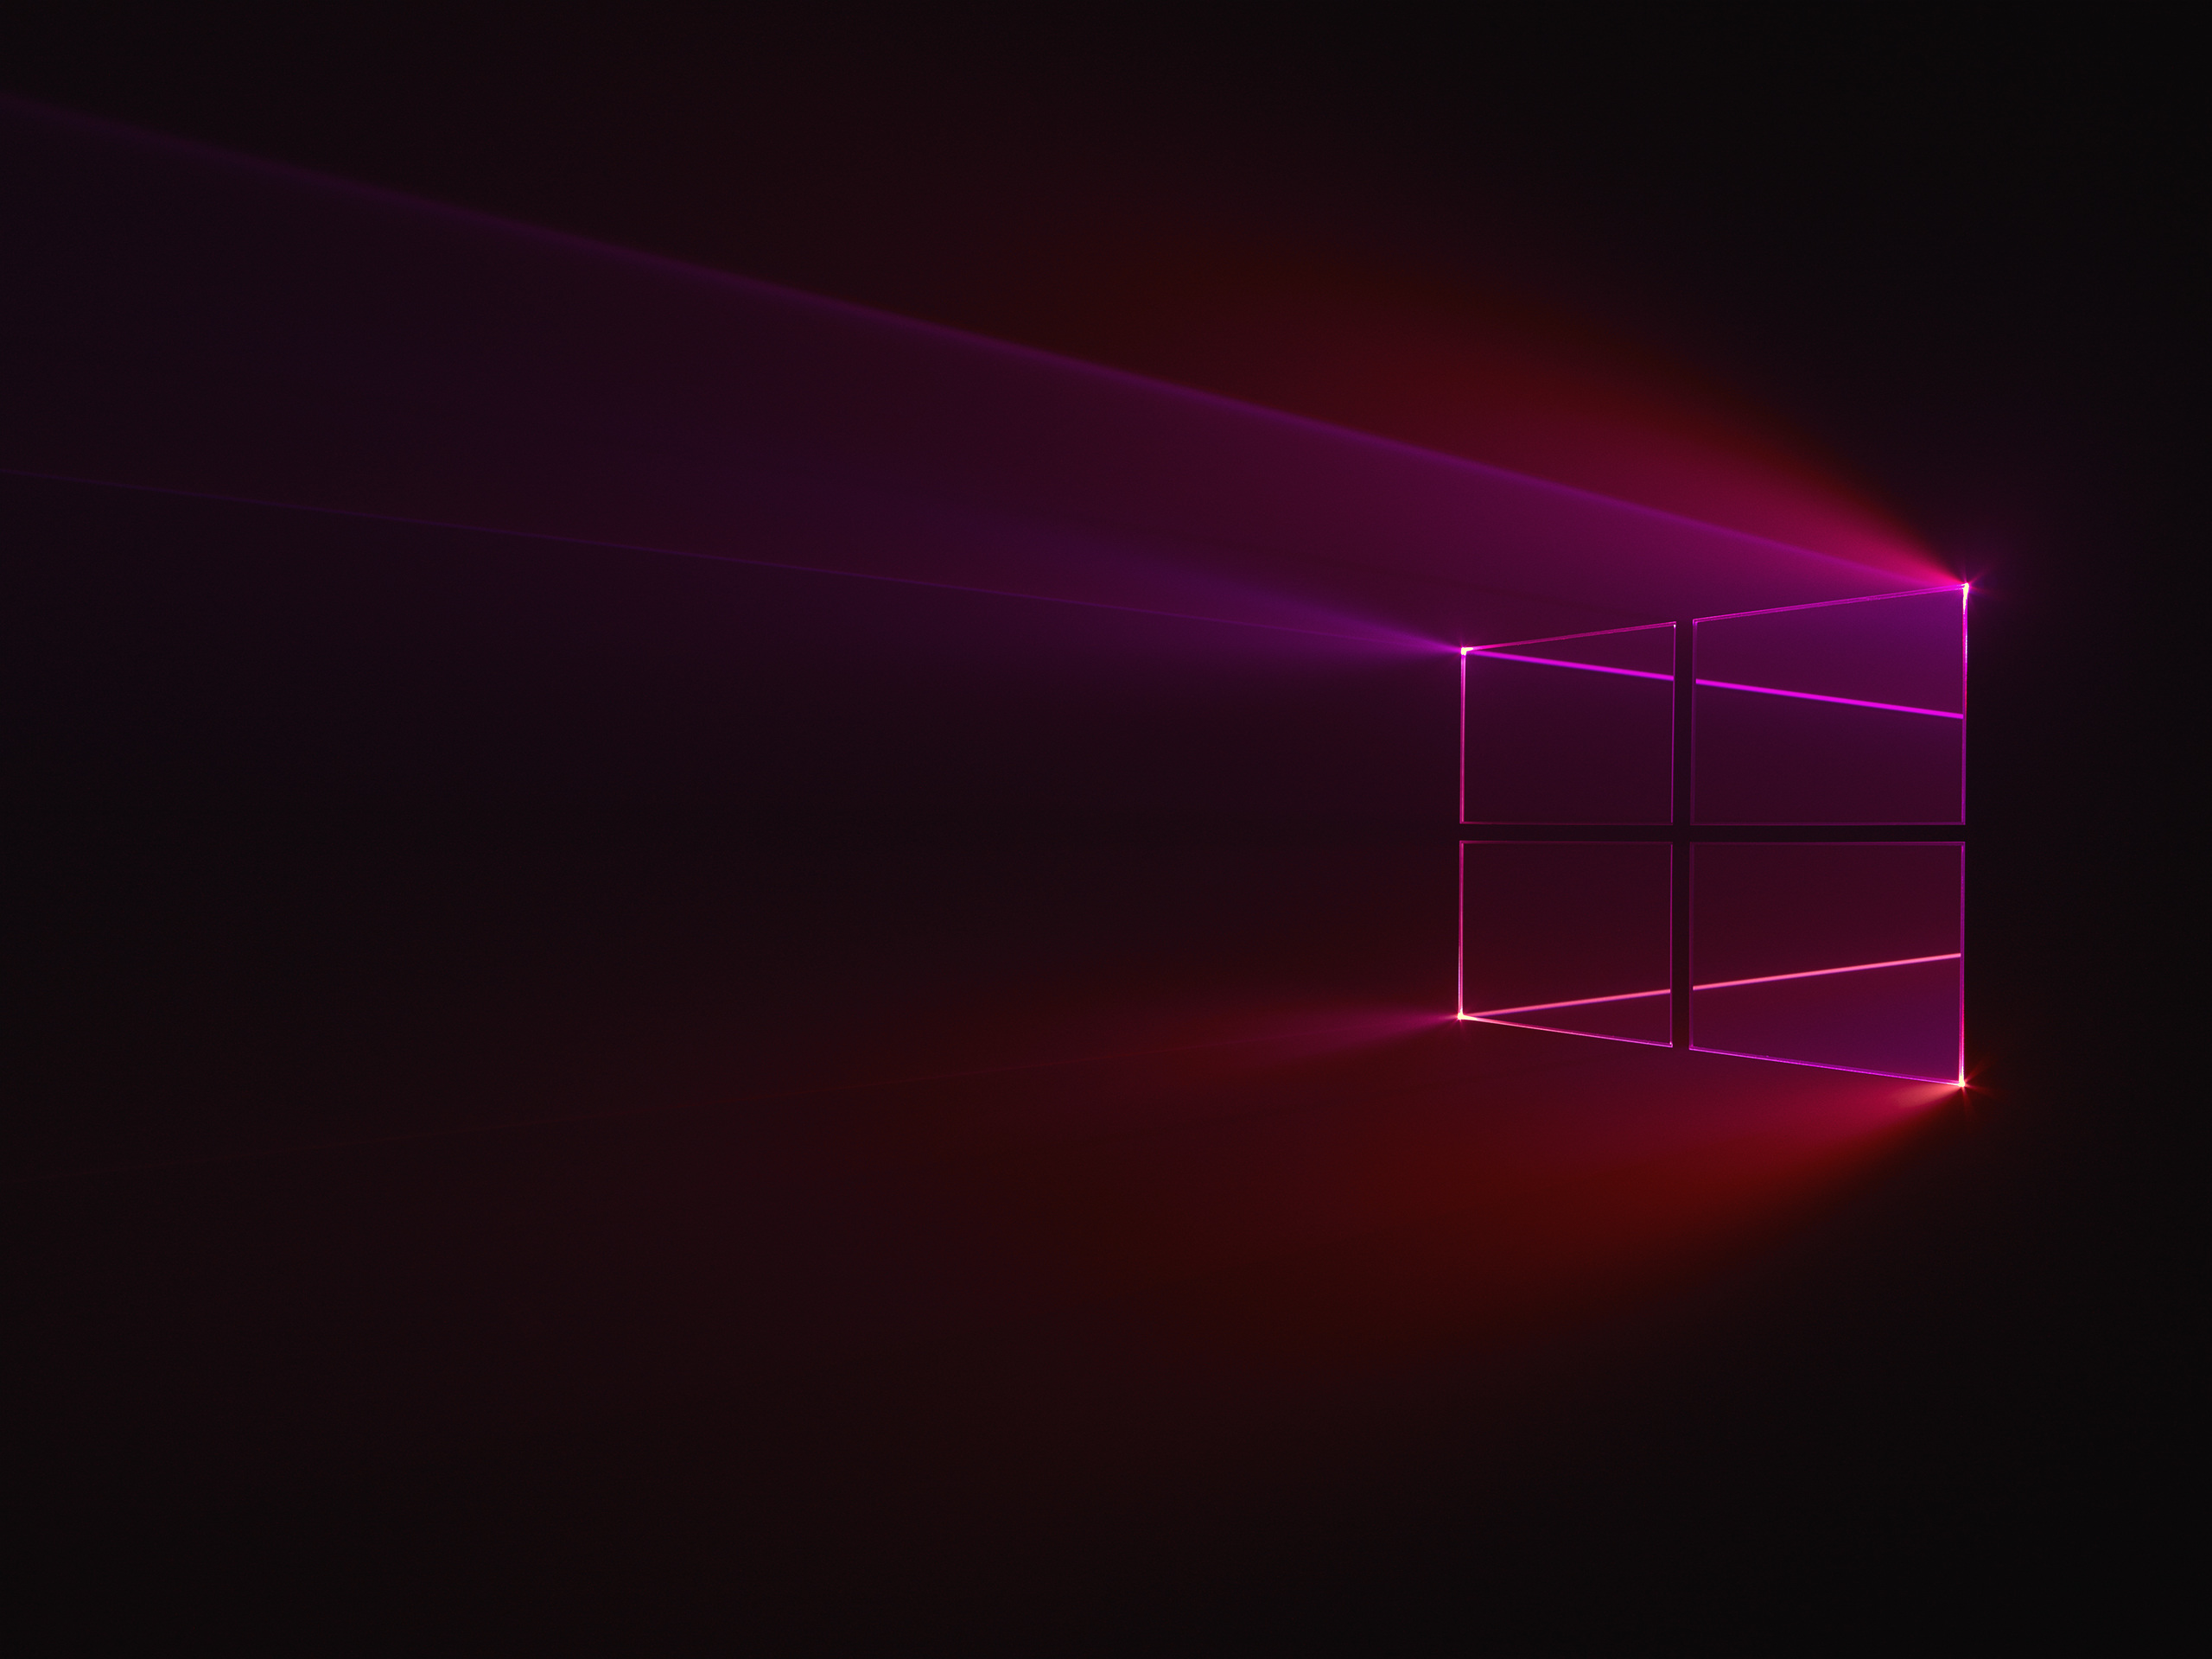 how to get 1024x768 on windows 10